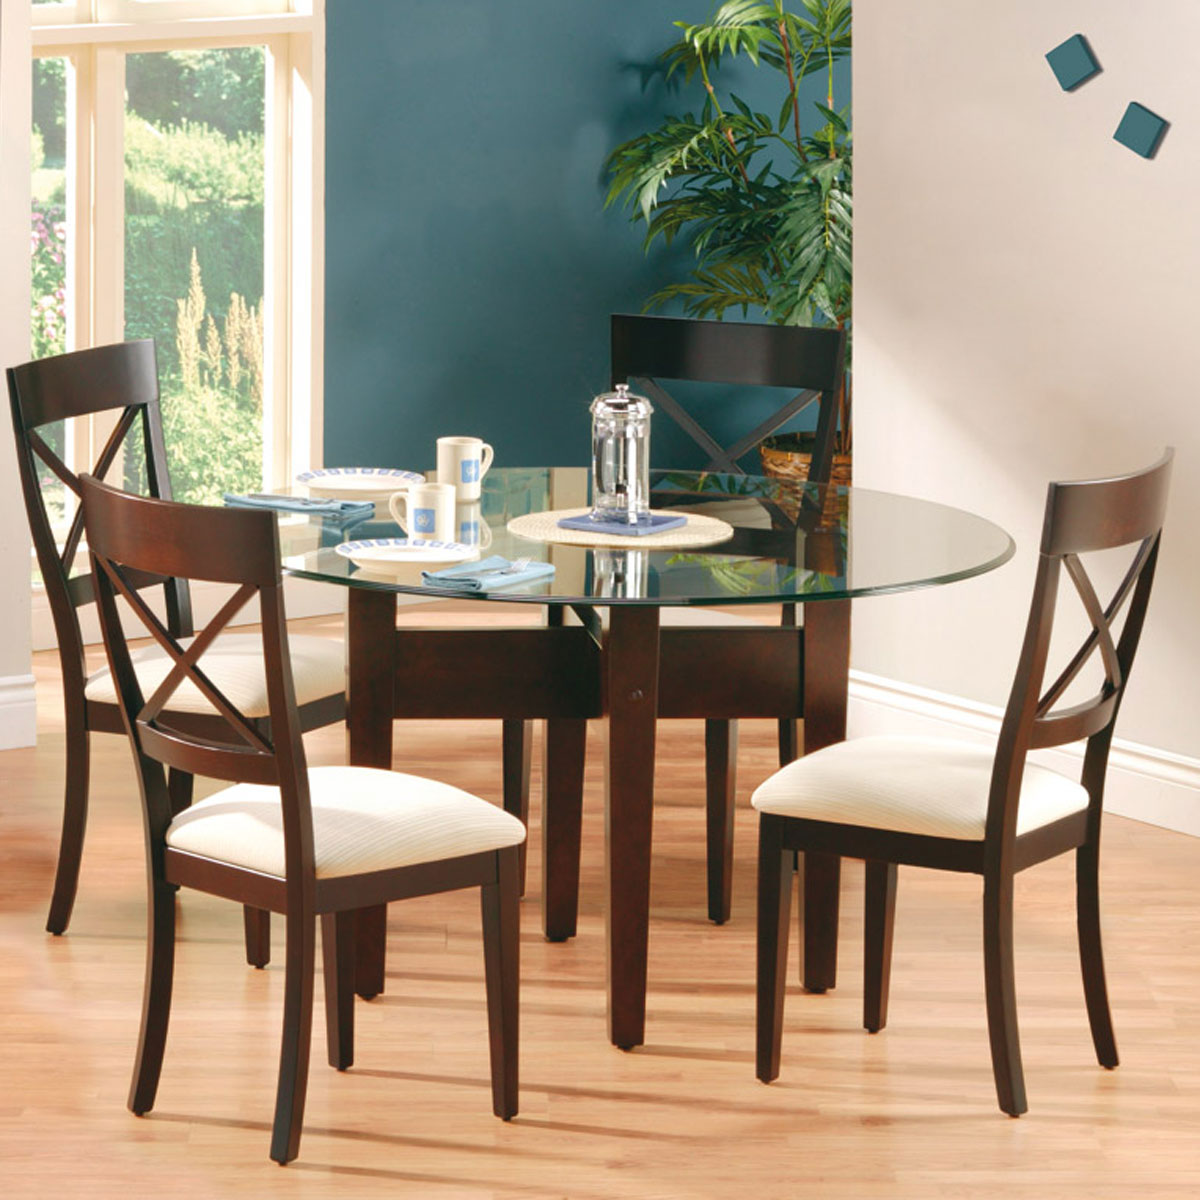 54 Inch Round Glass Top Dining Set Bermex King Dinettes